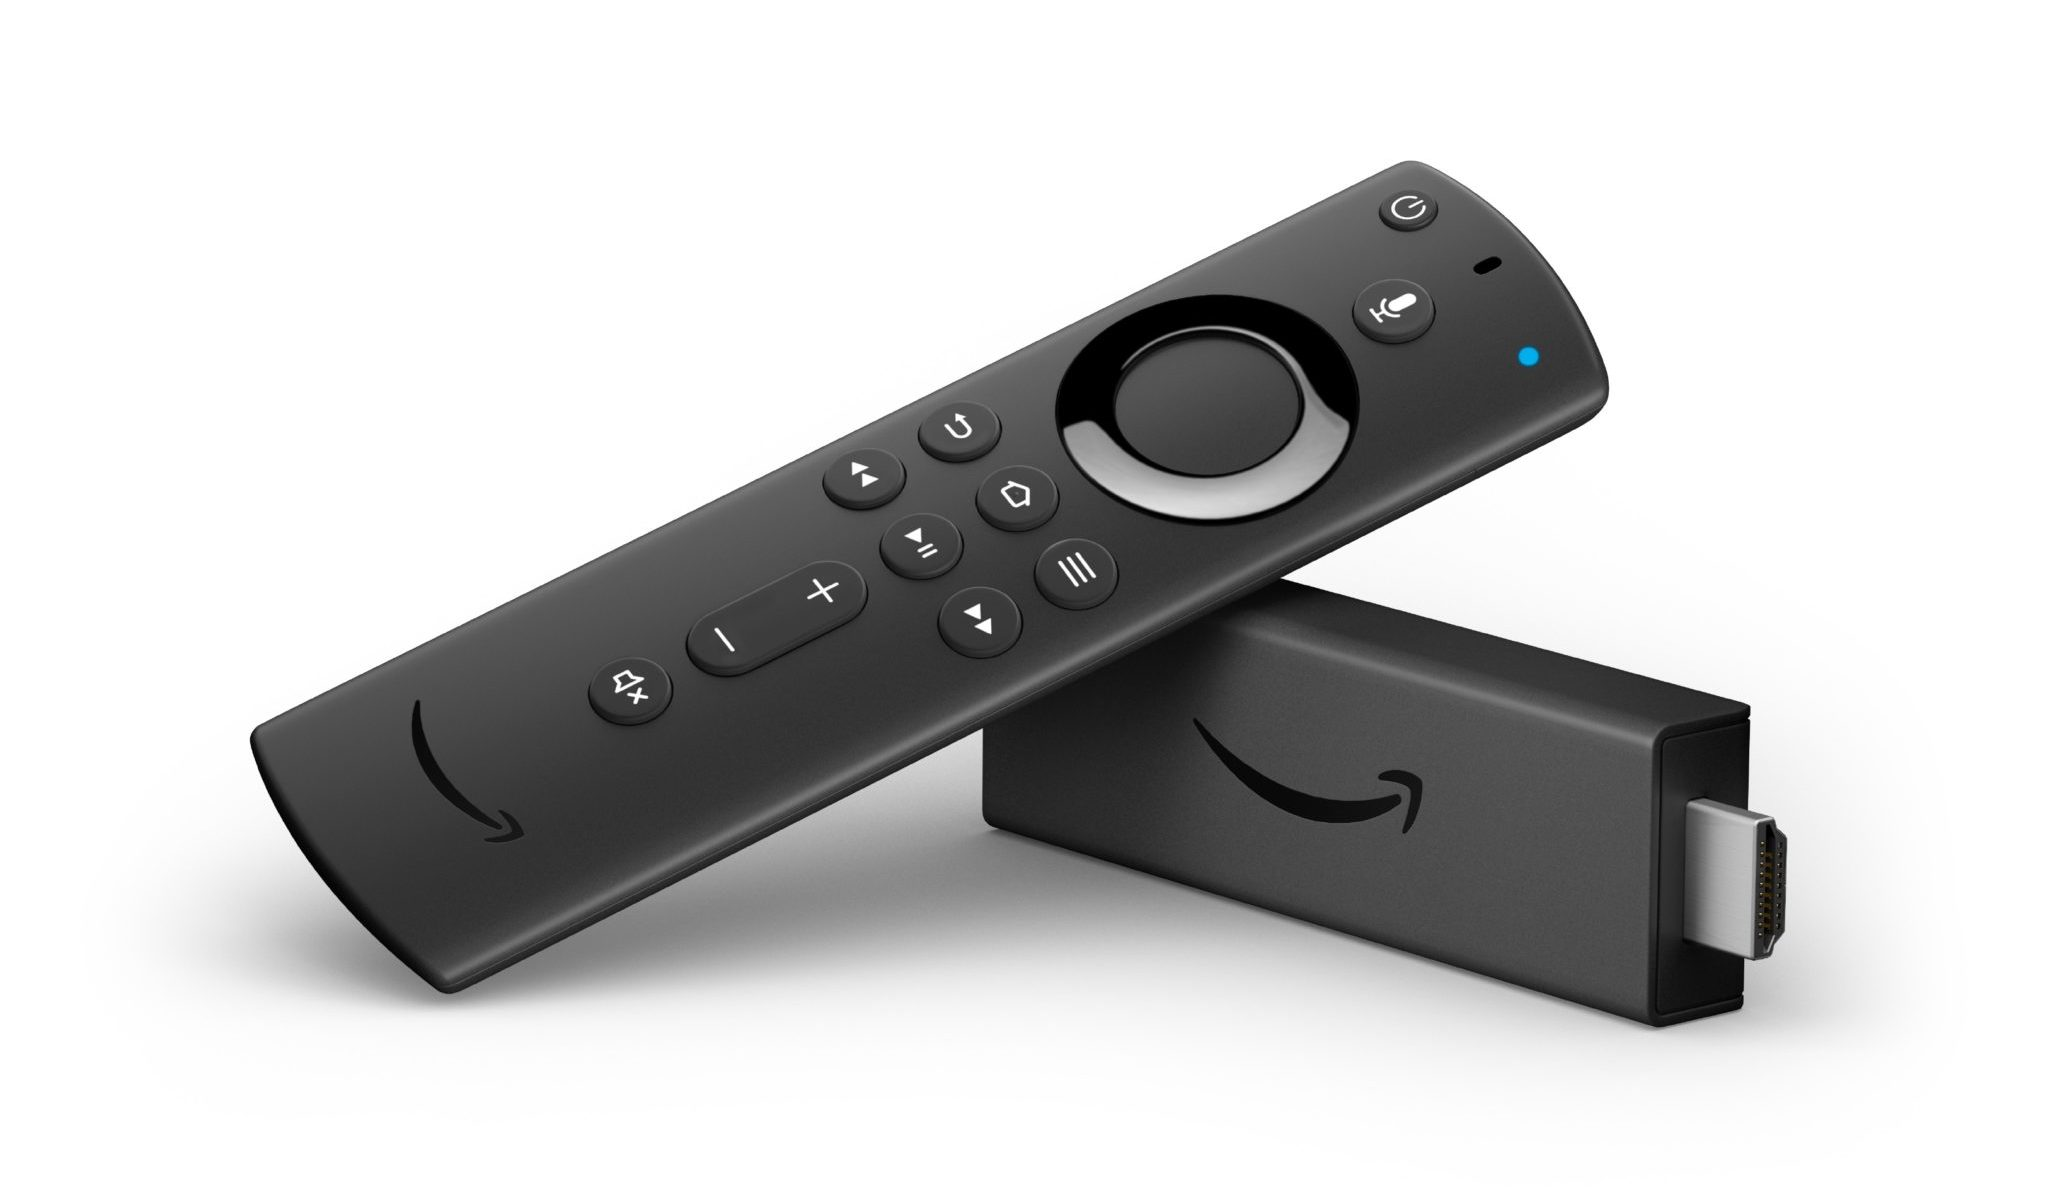 The Top 10 New Fire TV & Fire TV Sticks Apps For September